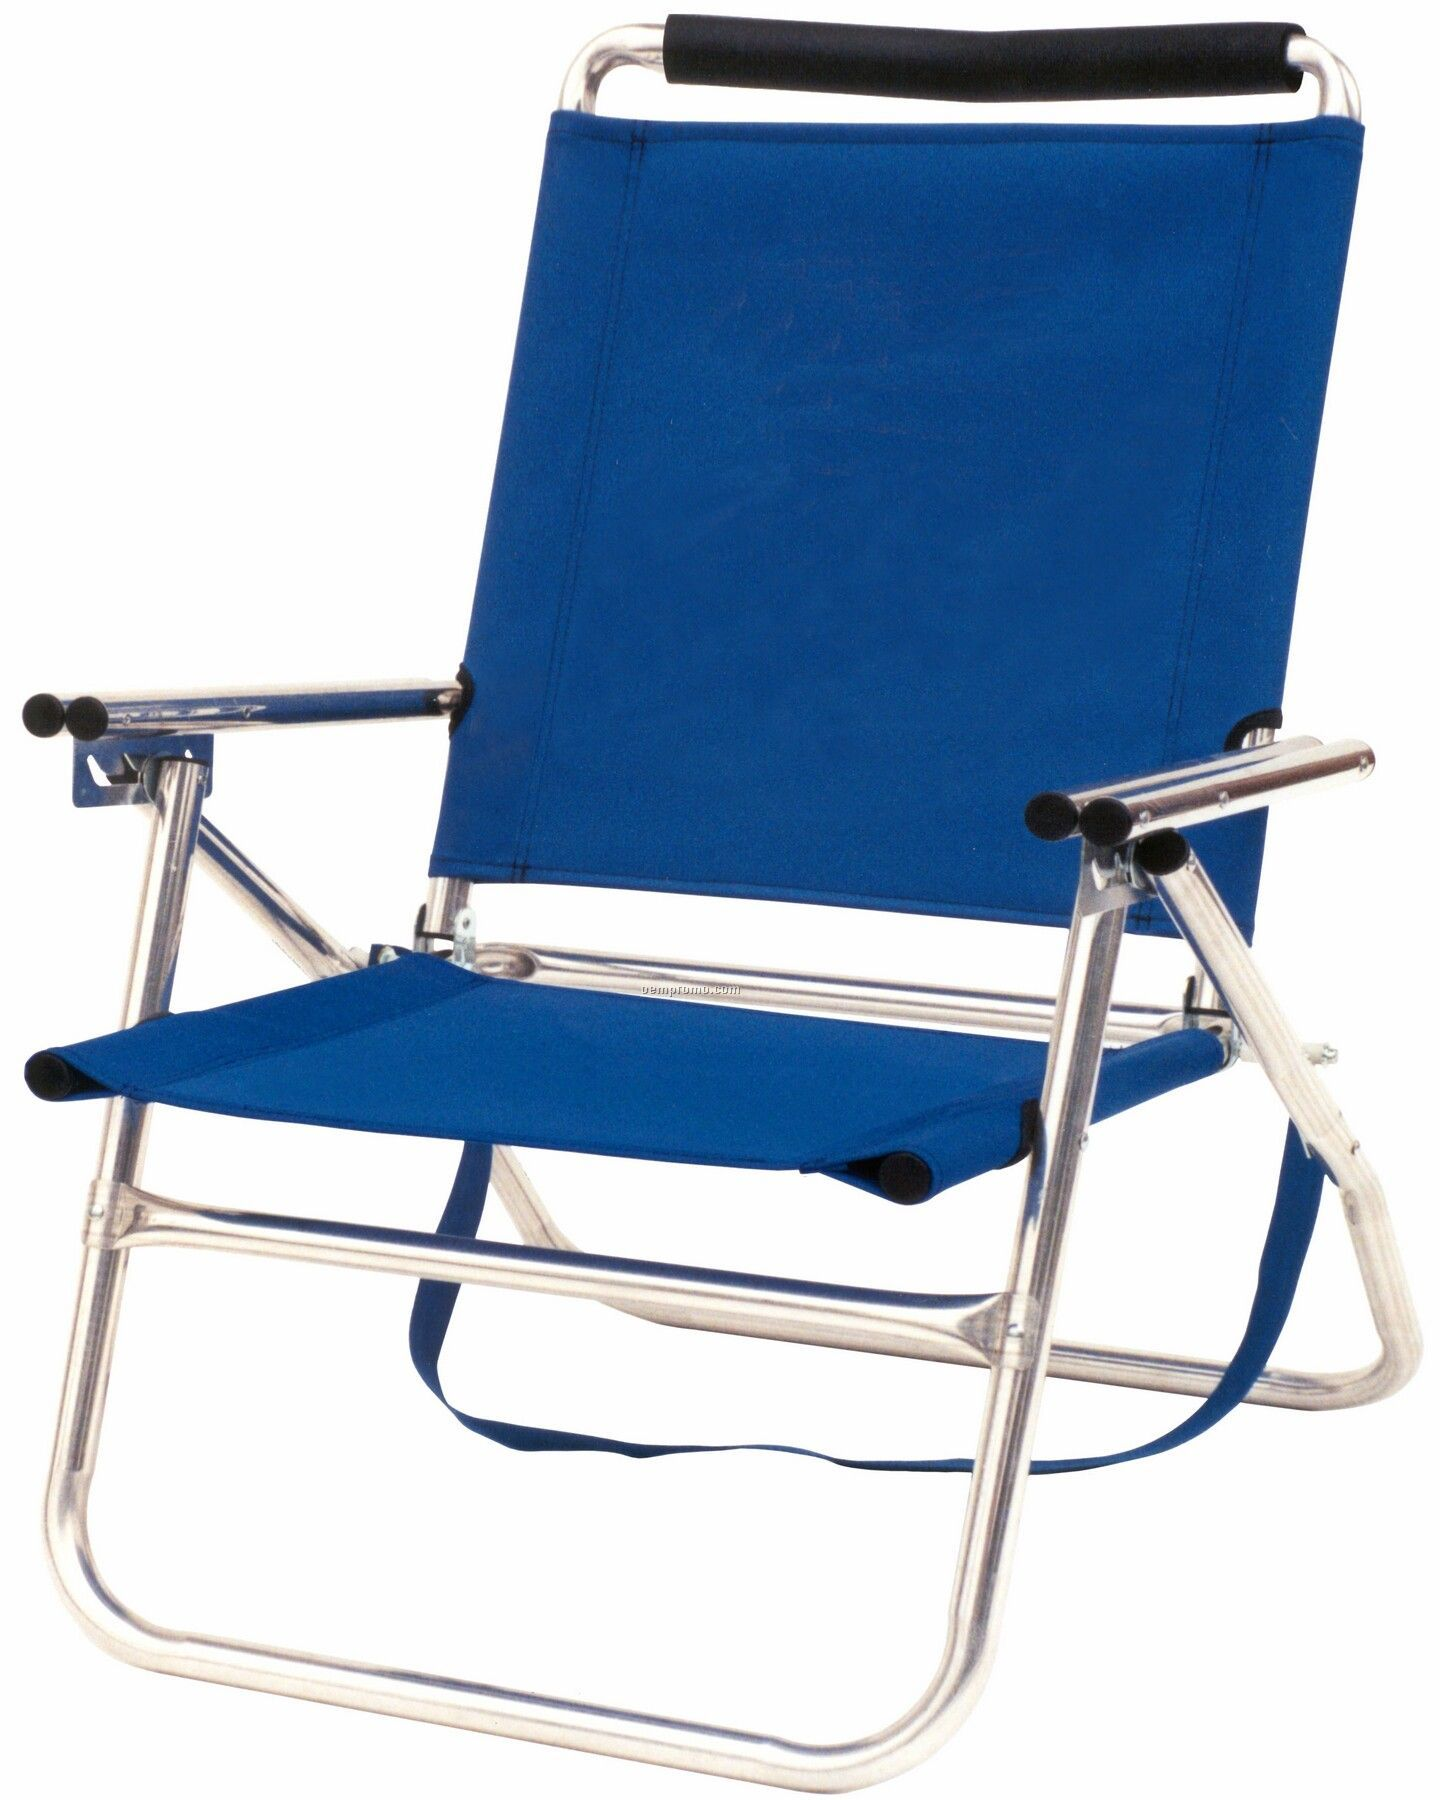 fishing cooler chair hunting blind us made 3 position recliner with full color digital